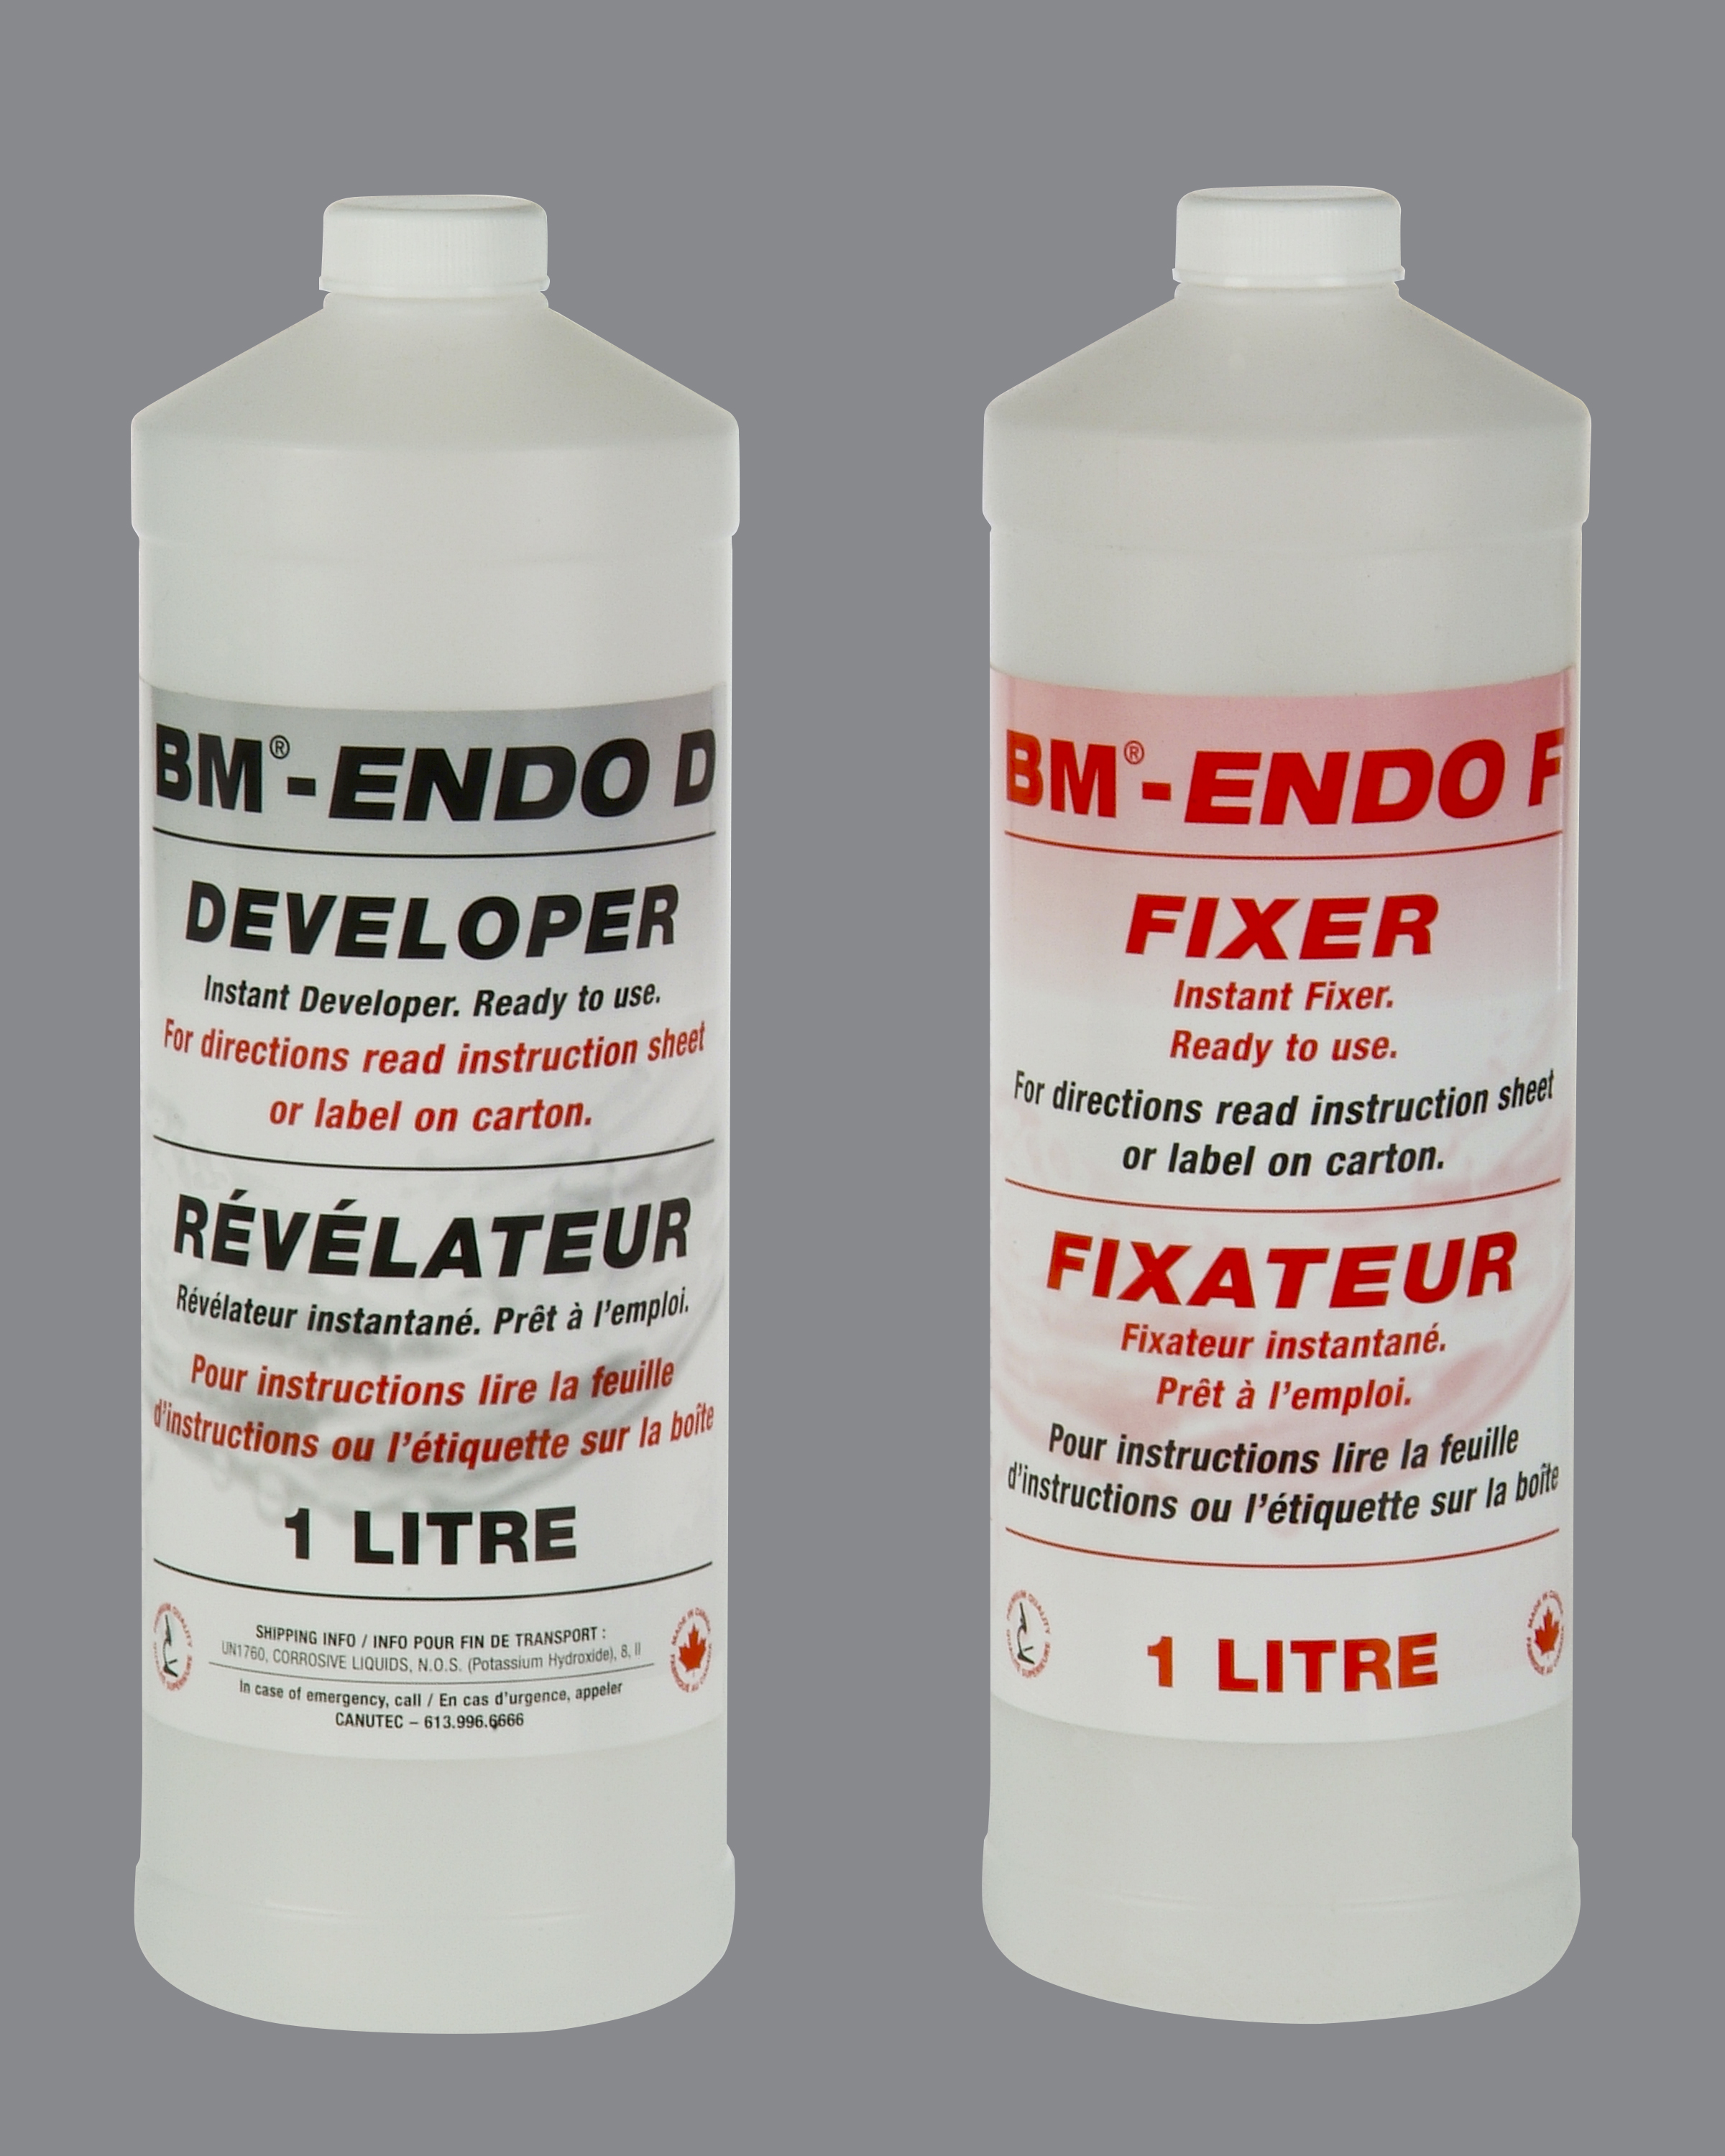 BM-ENDO RAPID DEVELOPER & FIXER